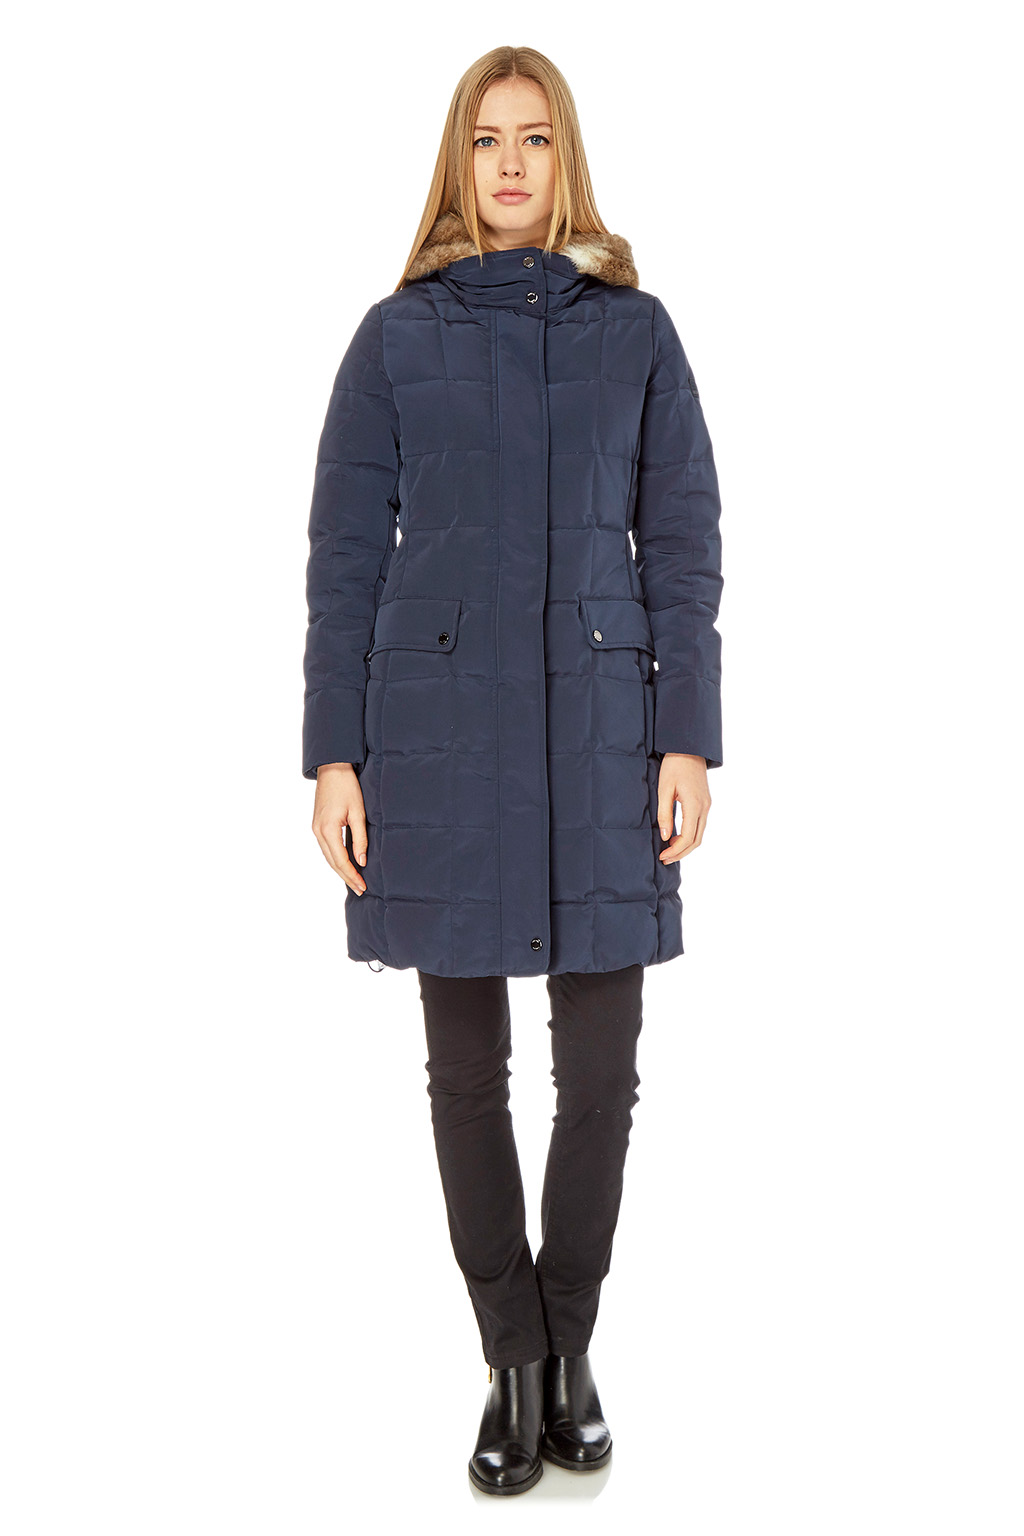 ad290a2d663 Anoraks marca Geox para mujer